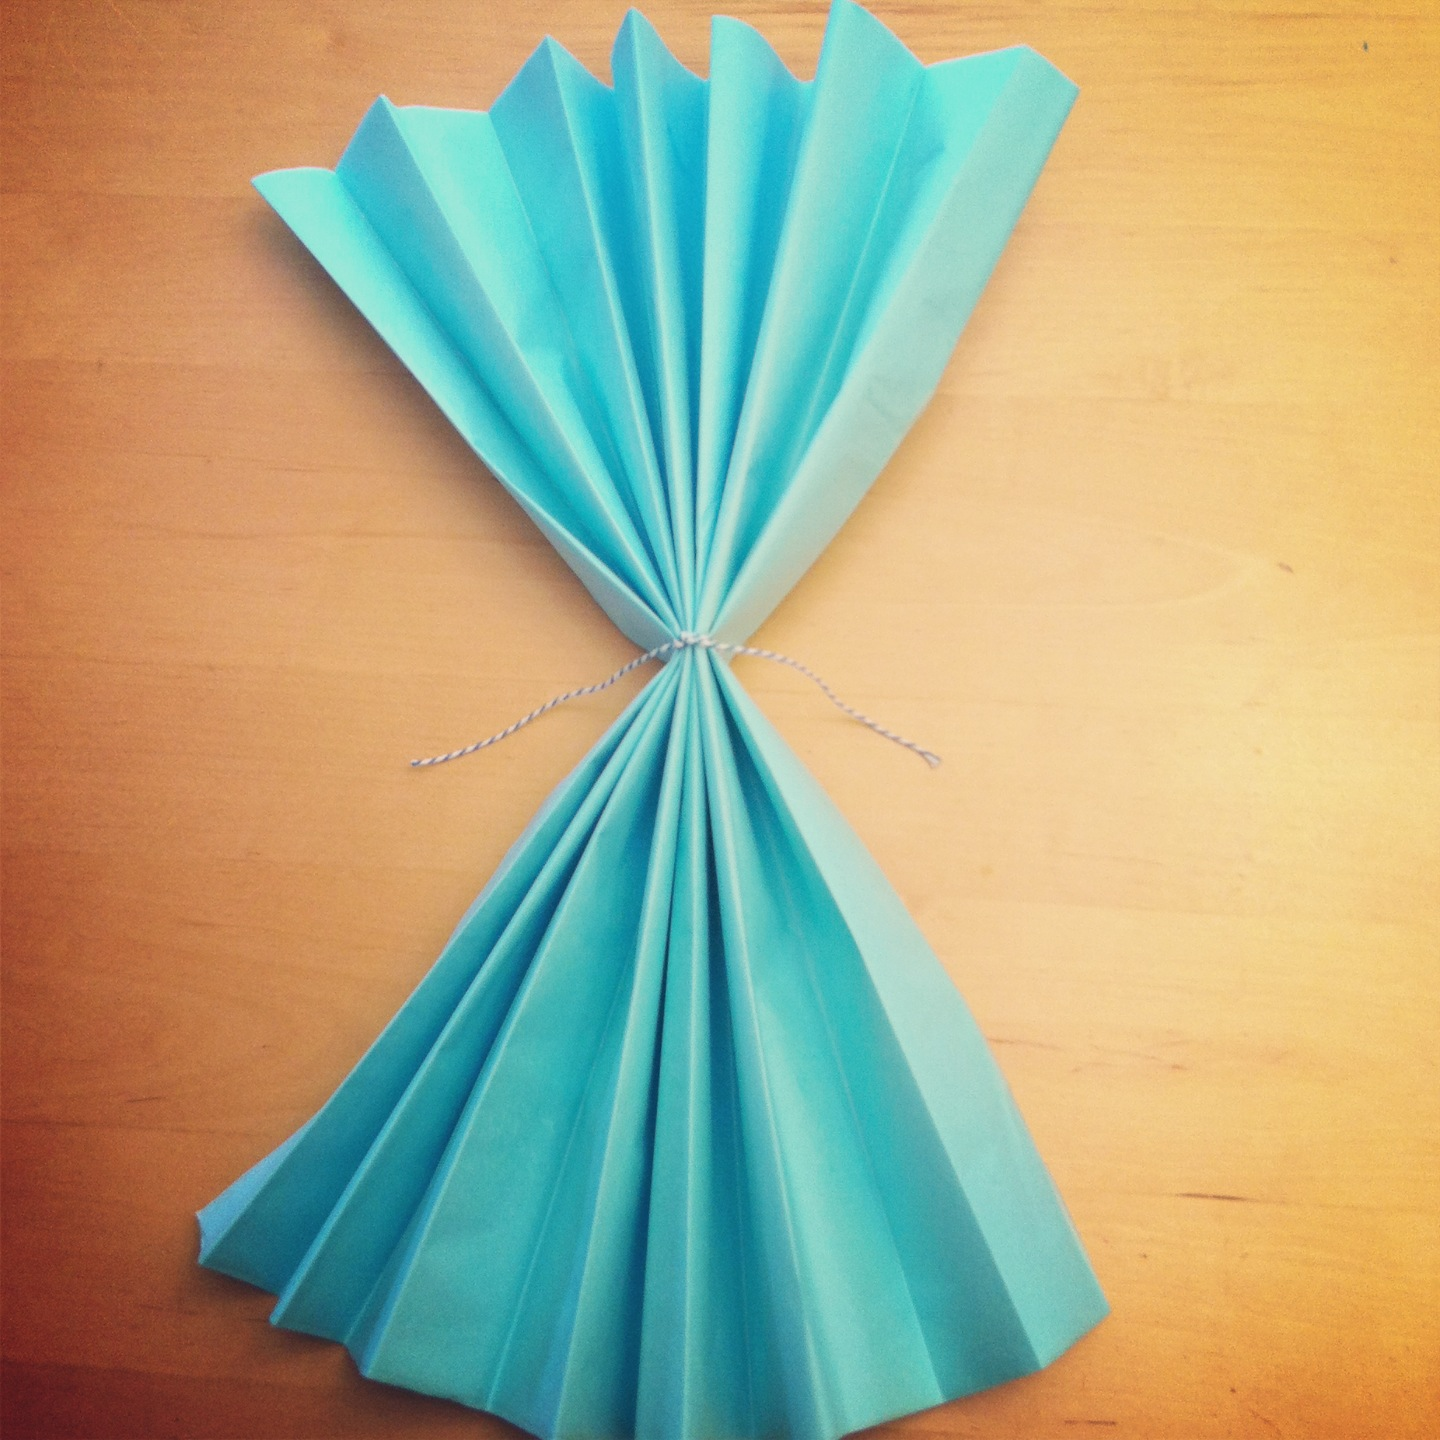 DIY Giant Tissue Paper Flowers Tutorial 2 for $1.00 Make Beautiful Birthday Party Decorations Step 4